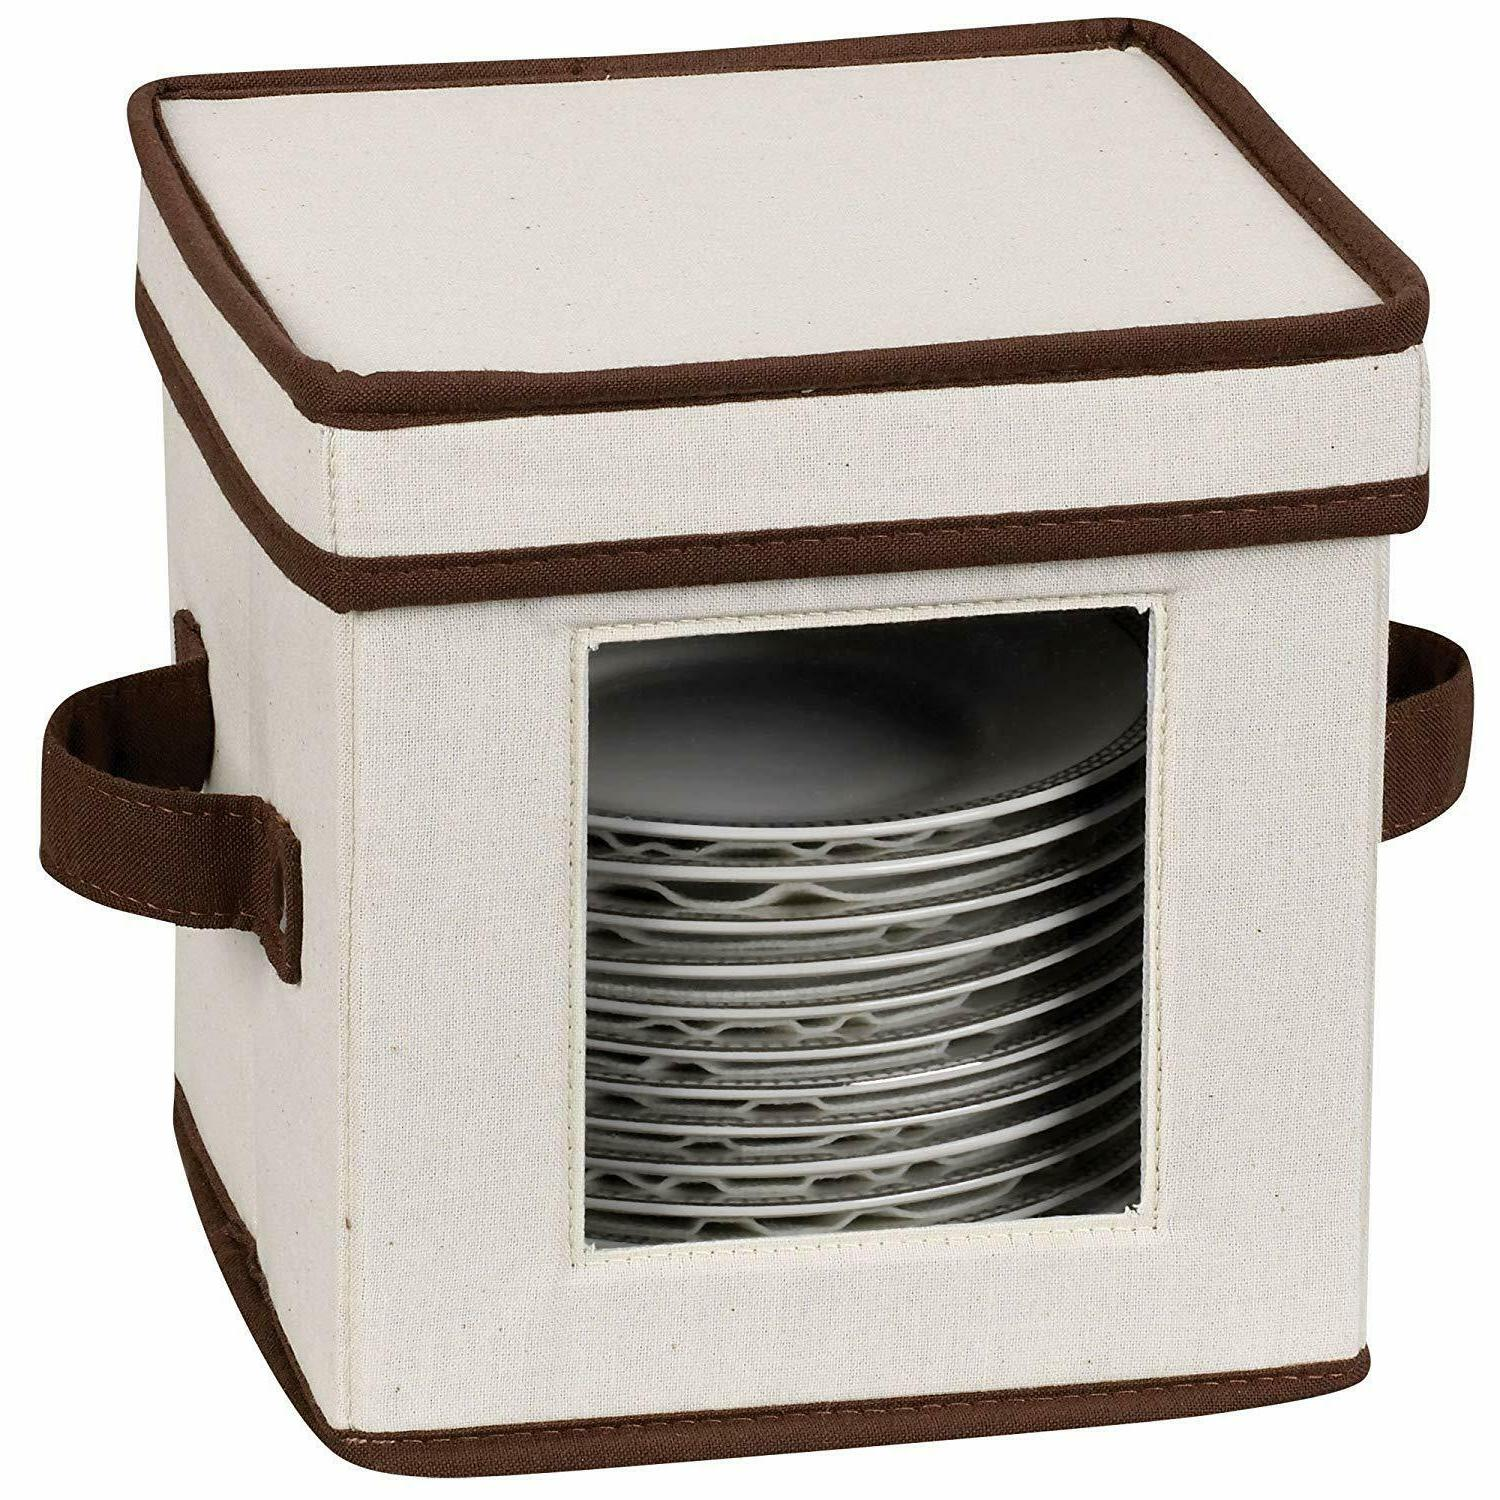 Household 530 Dinnerware Box with Lid and